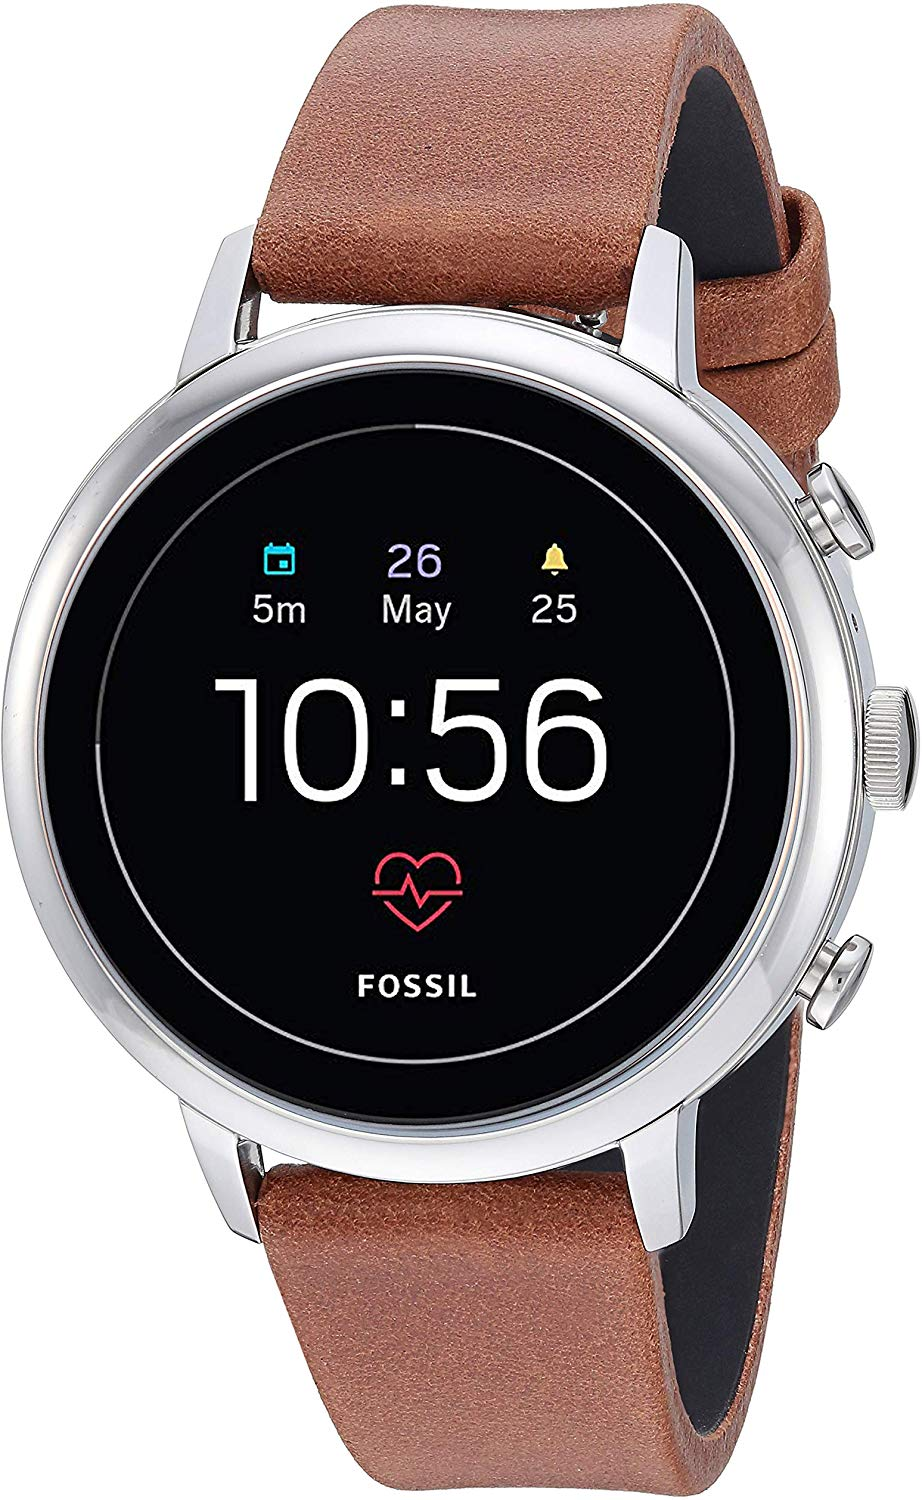 Fossil Women S Gen 4 Venture Hr Heart Rate Stainless Steel Touchscreen Smartwatch Color Rose Gold Model Ftw6011 Watches Smart Watch Gps Fossil